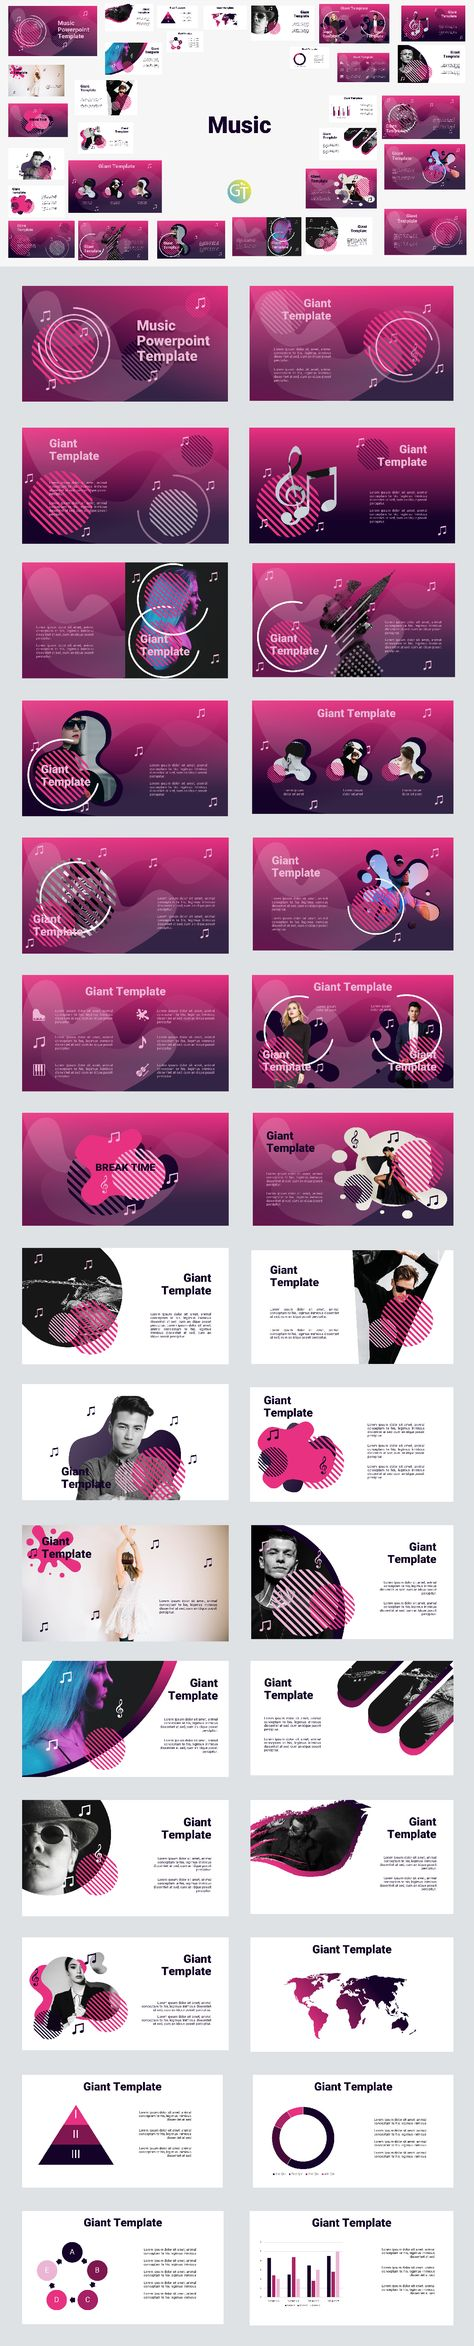 Music Fre Powerpoint Template